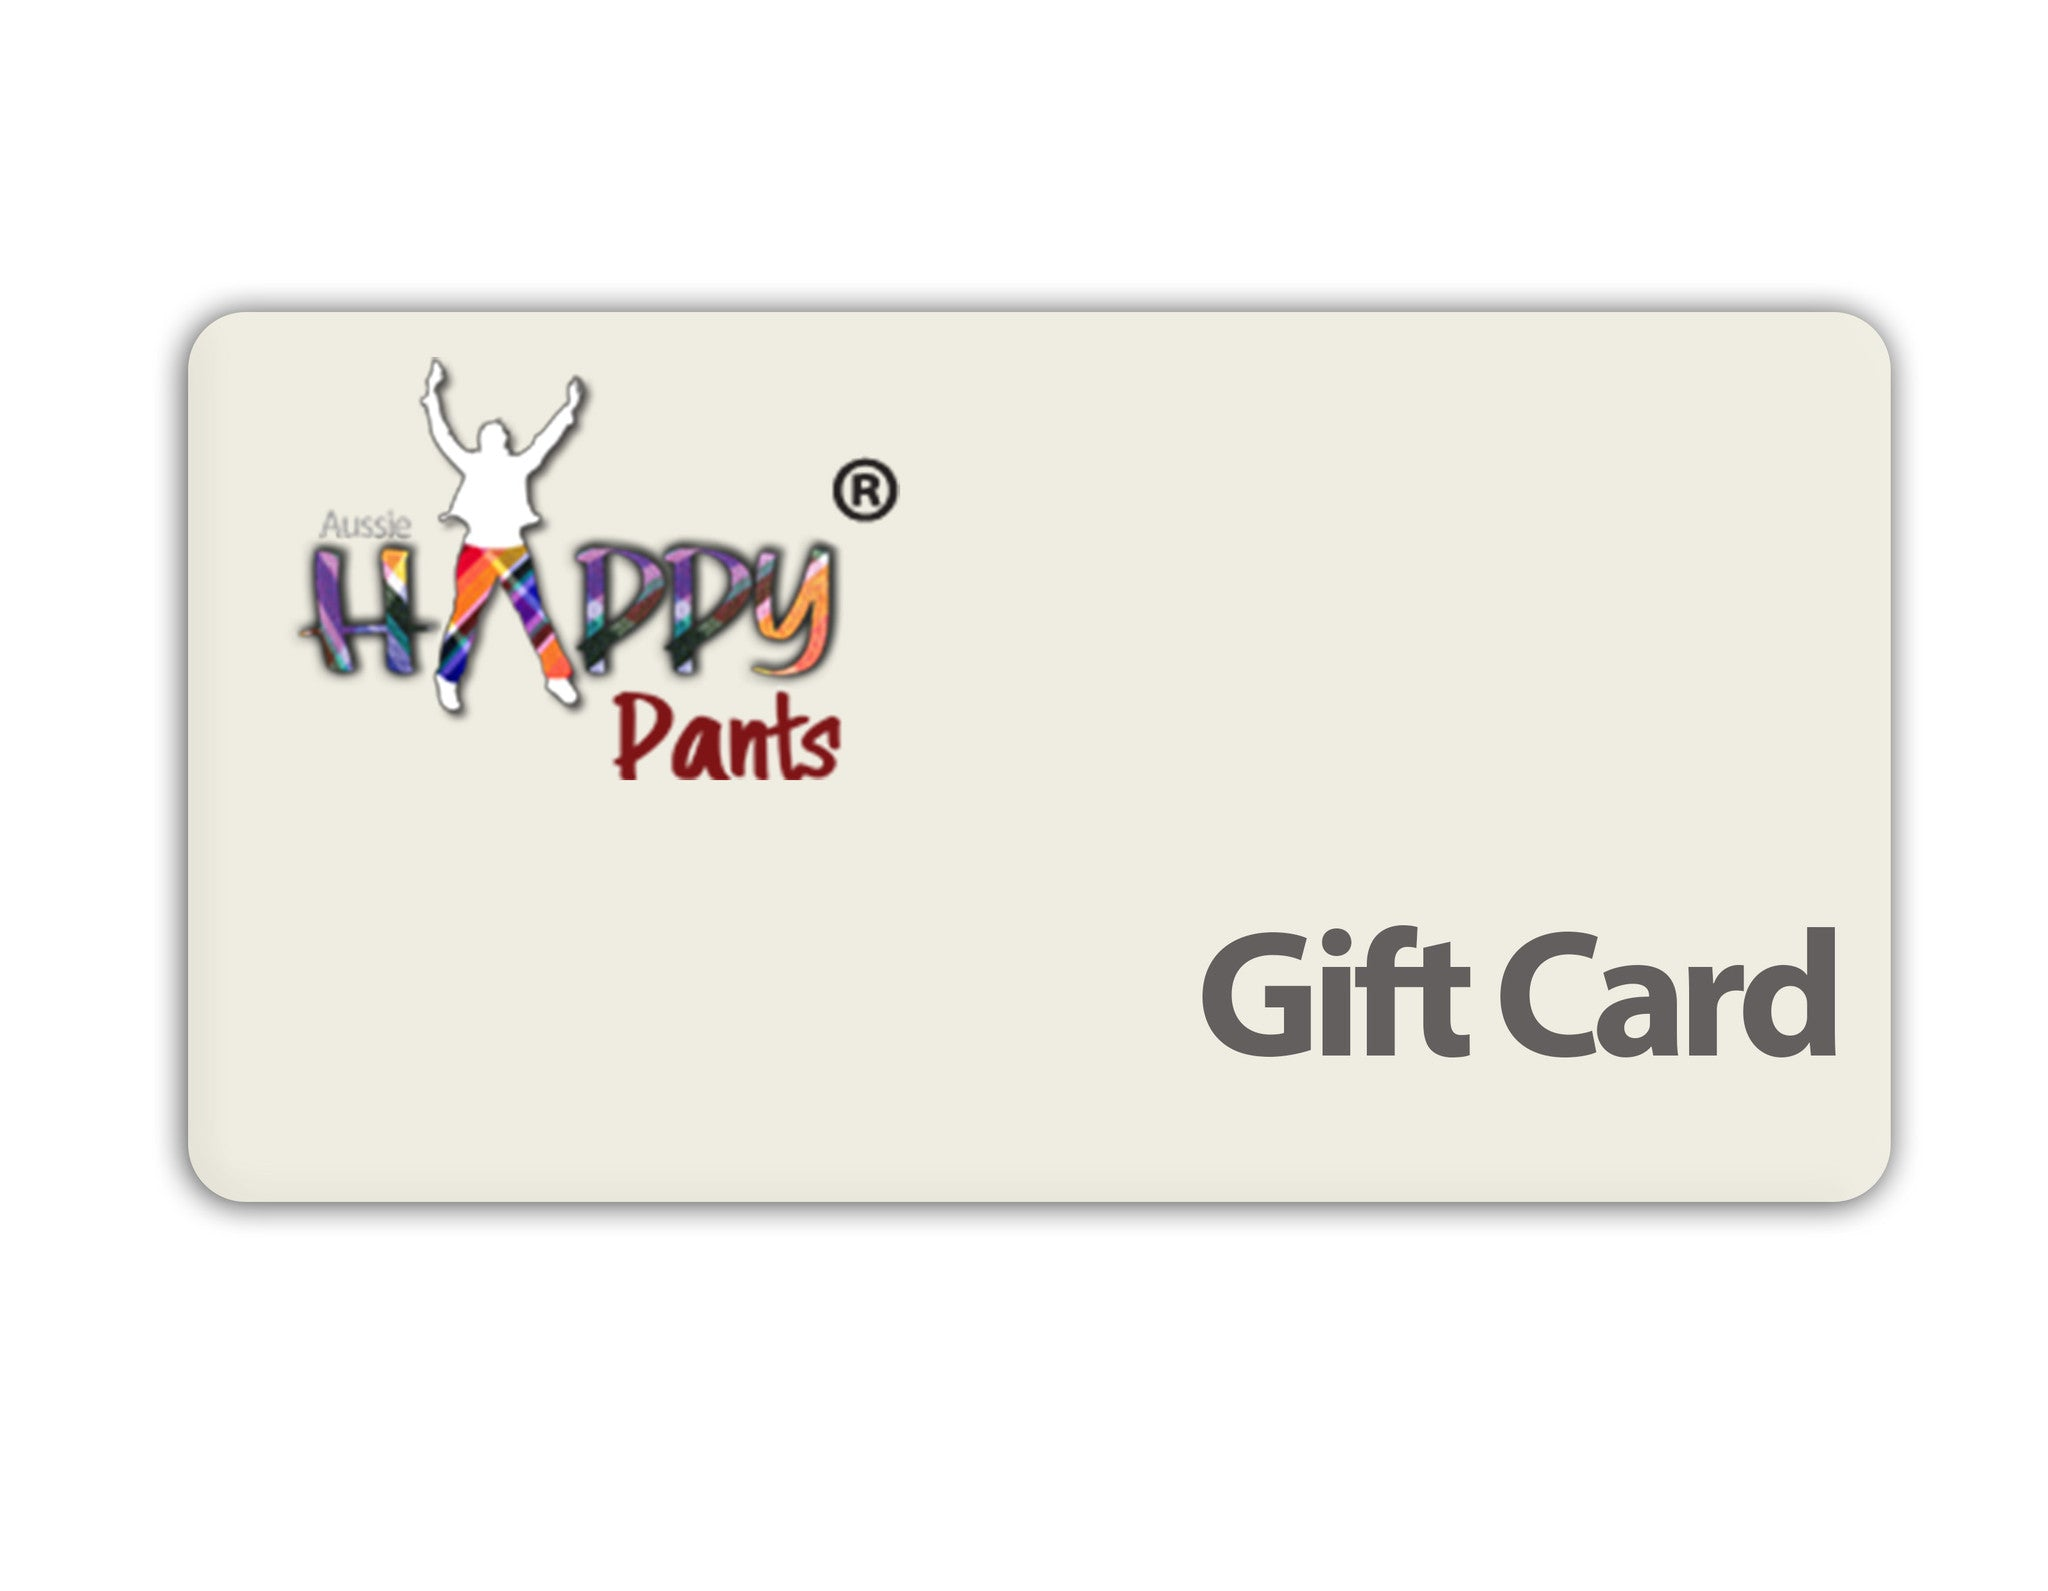 Gift Card - HAPPYPANTS.com.au - Happy Pants - 1